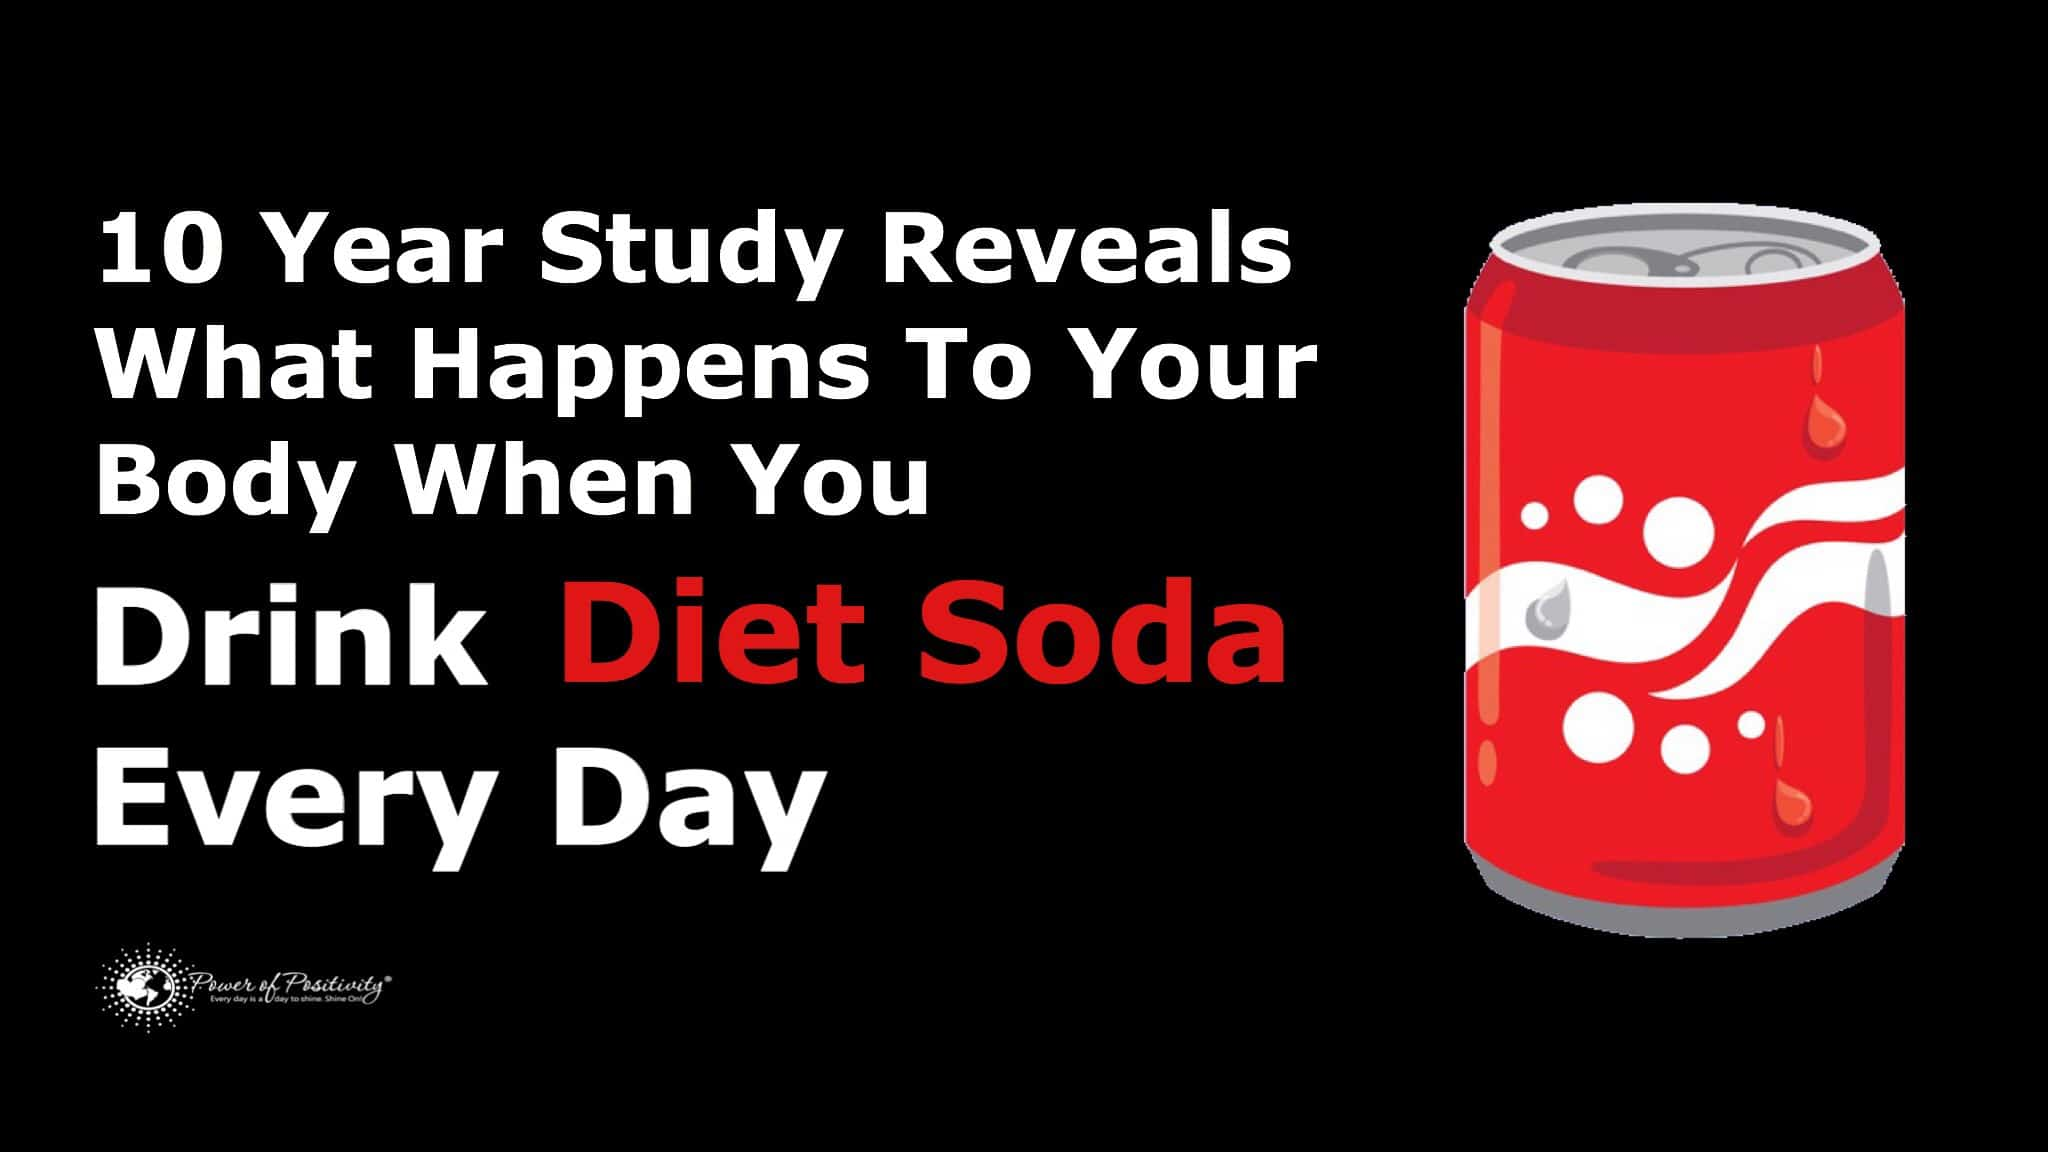 Soda Health Facts: Are Soft Drinks Really Bad for You? - WebMD